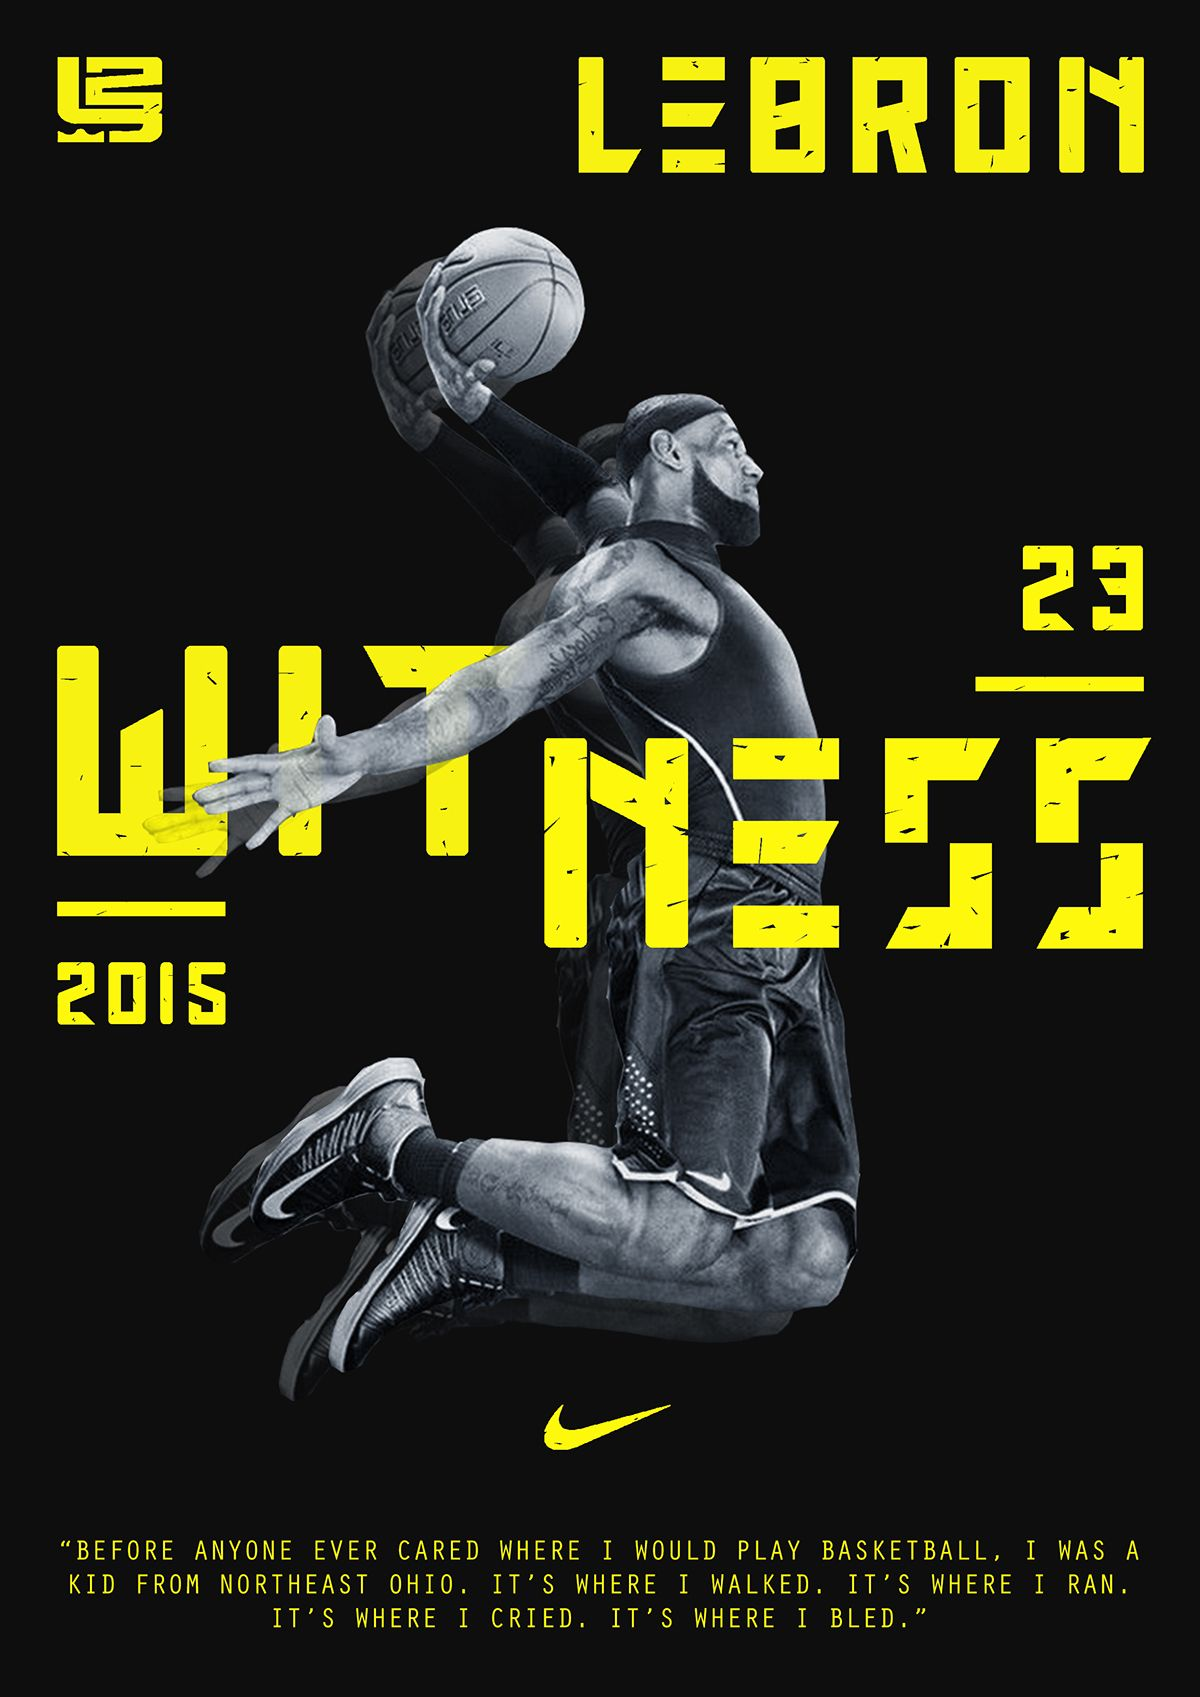 Lebron James X Nike 8216 Witness 8217 Campaign Sports Design Inspiration Sports Graphic Design Nike Poster